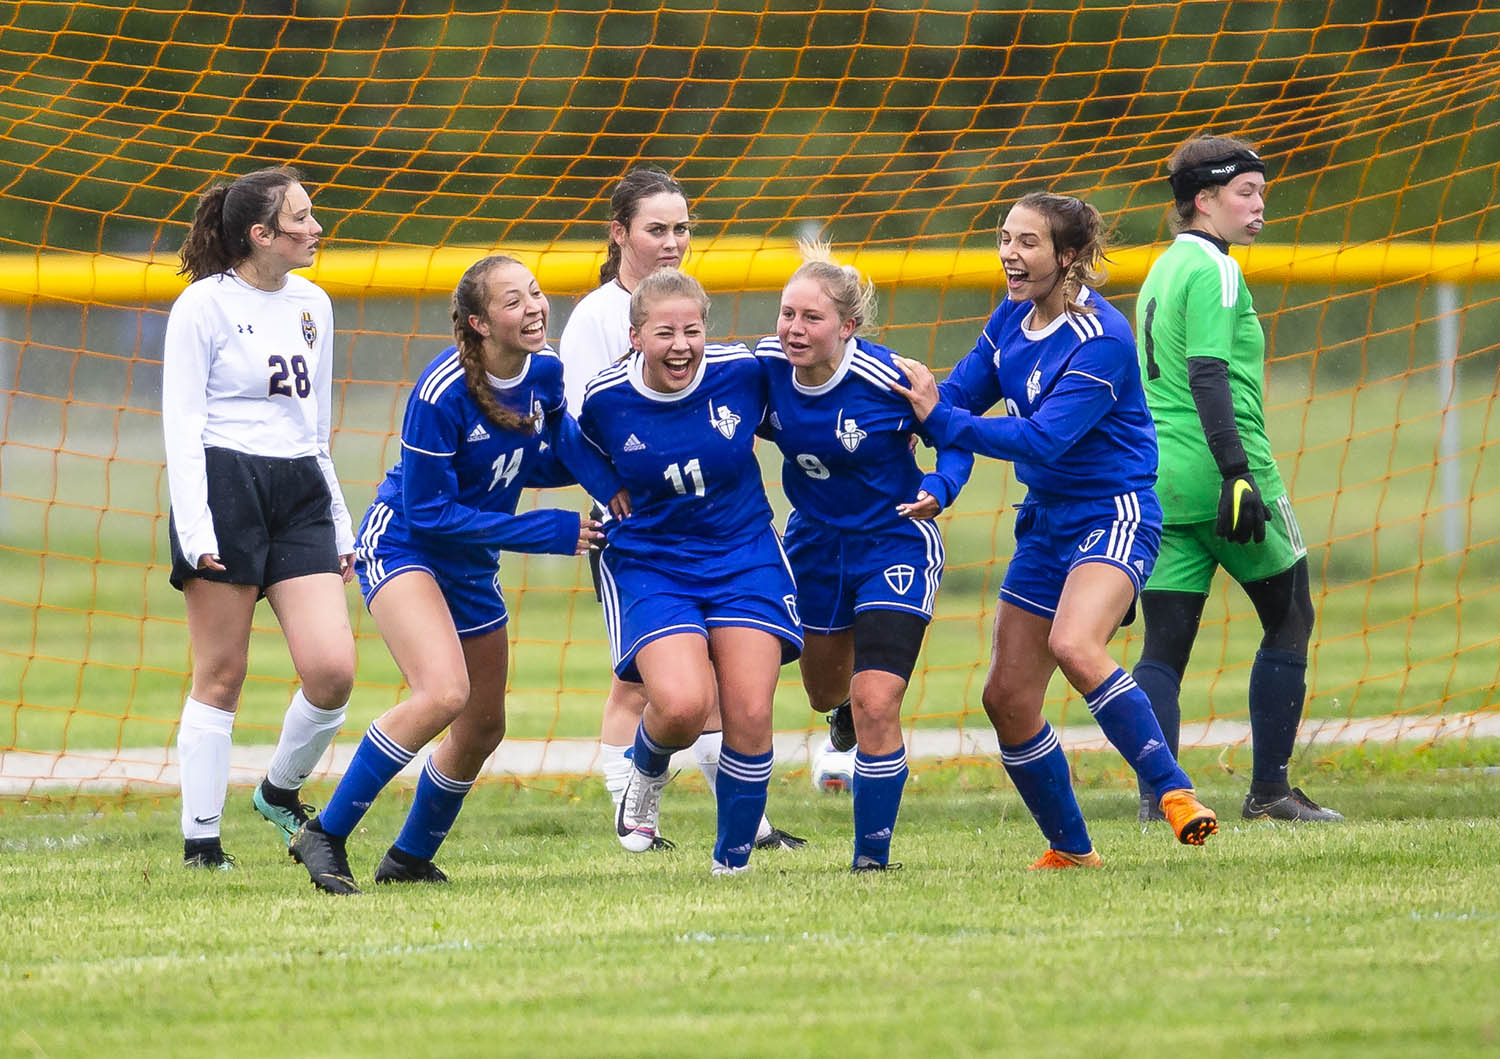 Lutheran's Allison Blade (11) celebrates with her teammates after scoring a goal to tie the game 1-1 against Williamsville in the second half during the Class 1A Riverton Regional Championship at the Riverton Field of Dreams, Saturday, May 11, 2019, in Riverton, Ill. [Justin L. Fowler/The State Journal-Register]